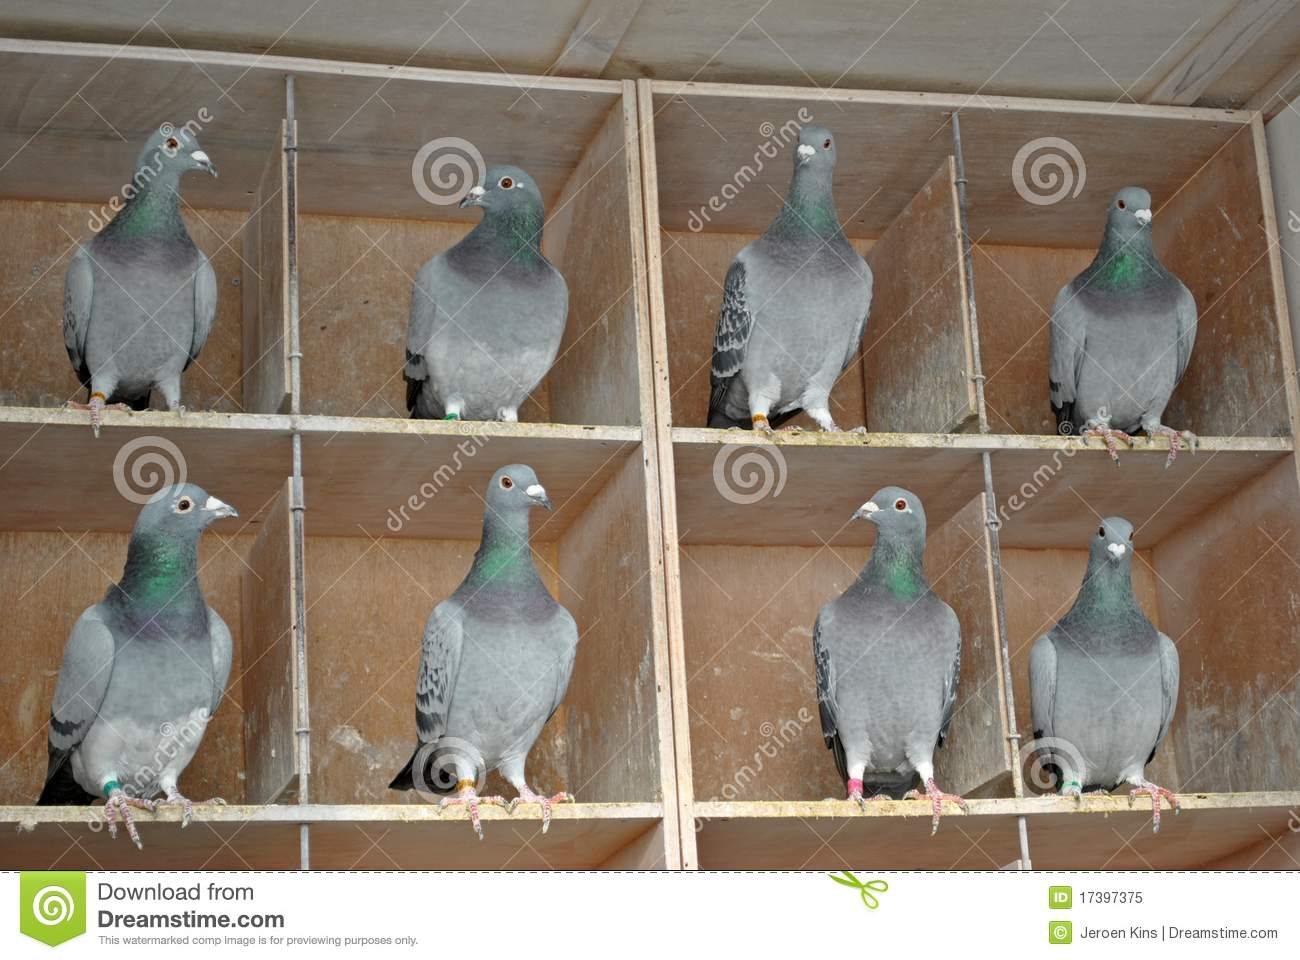 Pigeon females in a dovecote stock image image of wing, wooden.